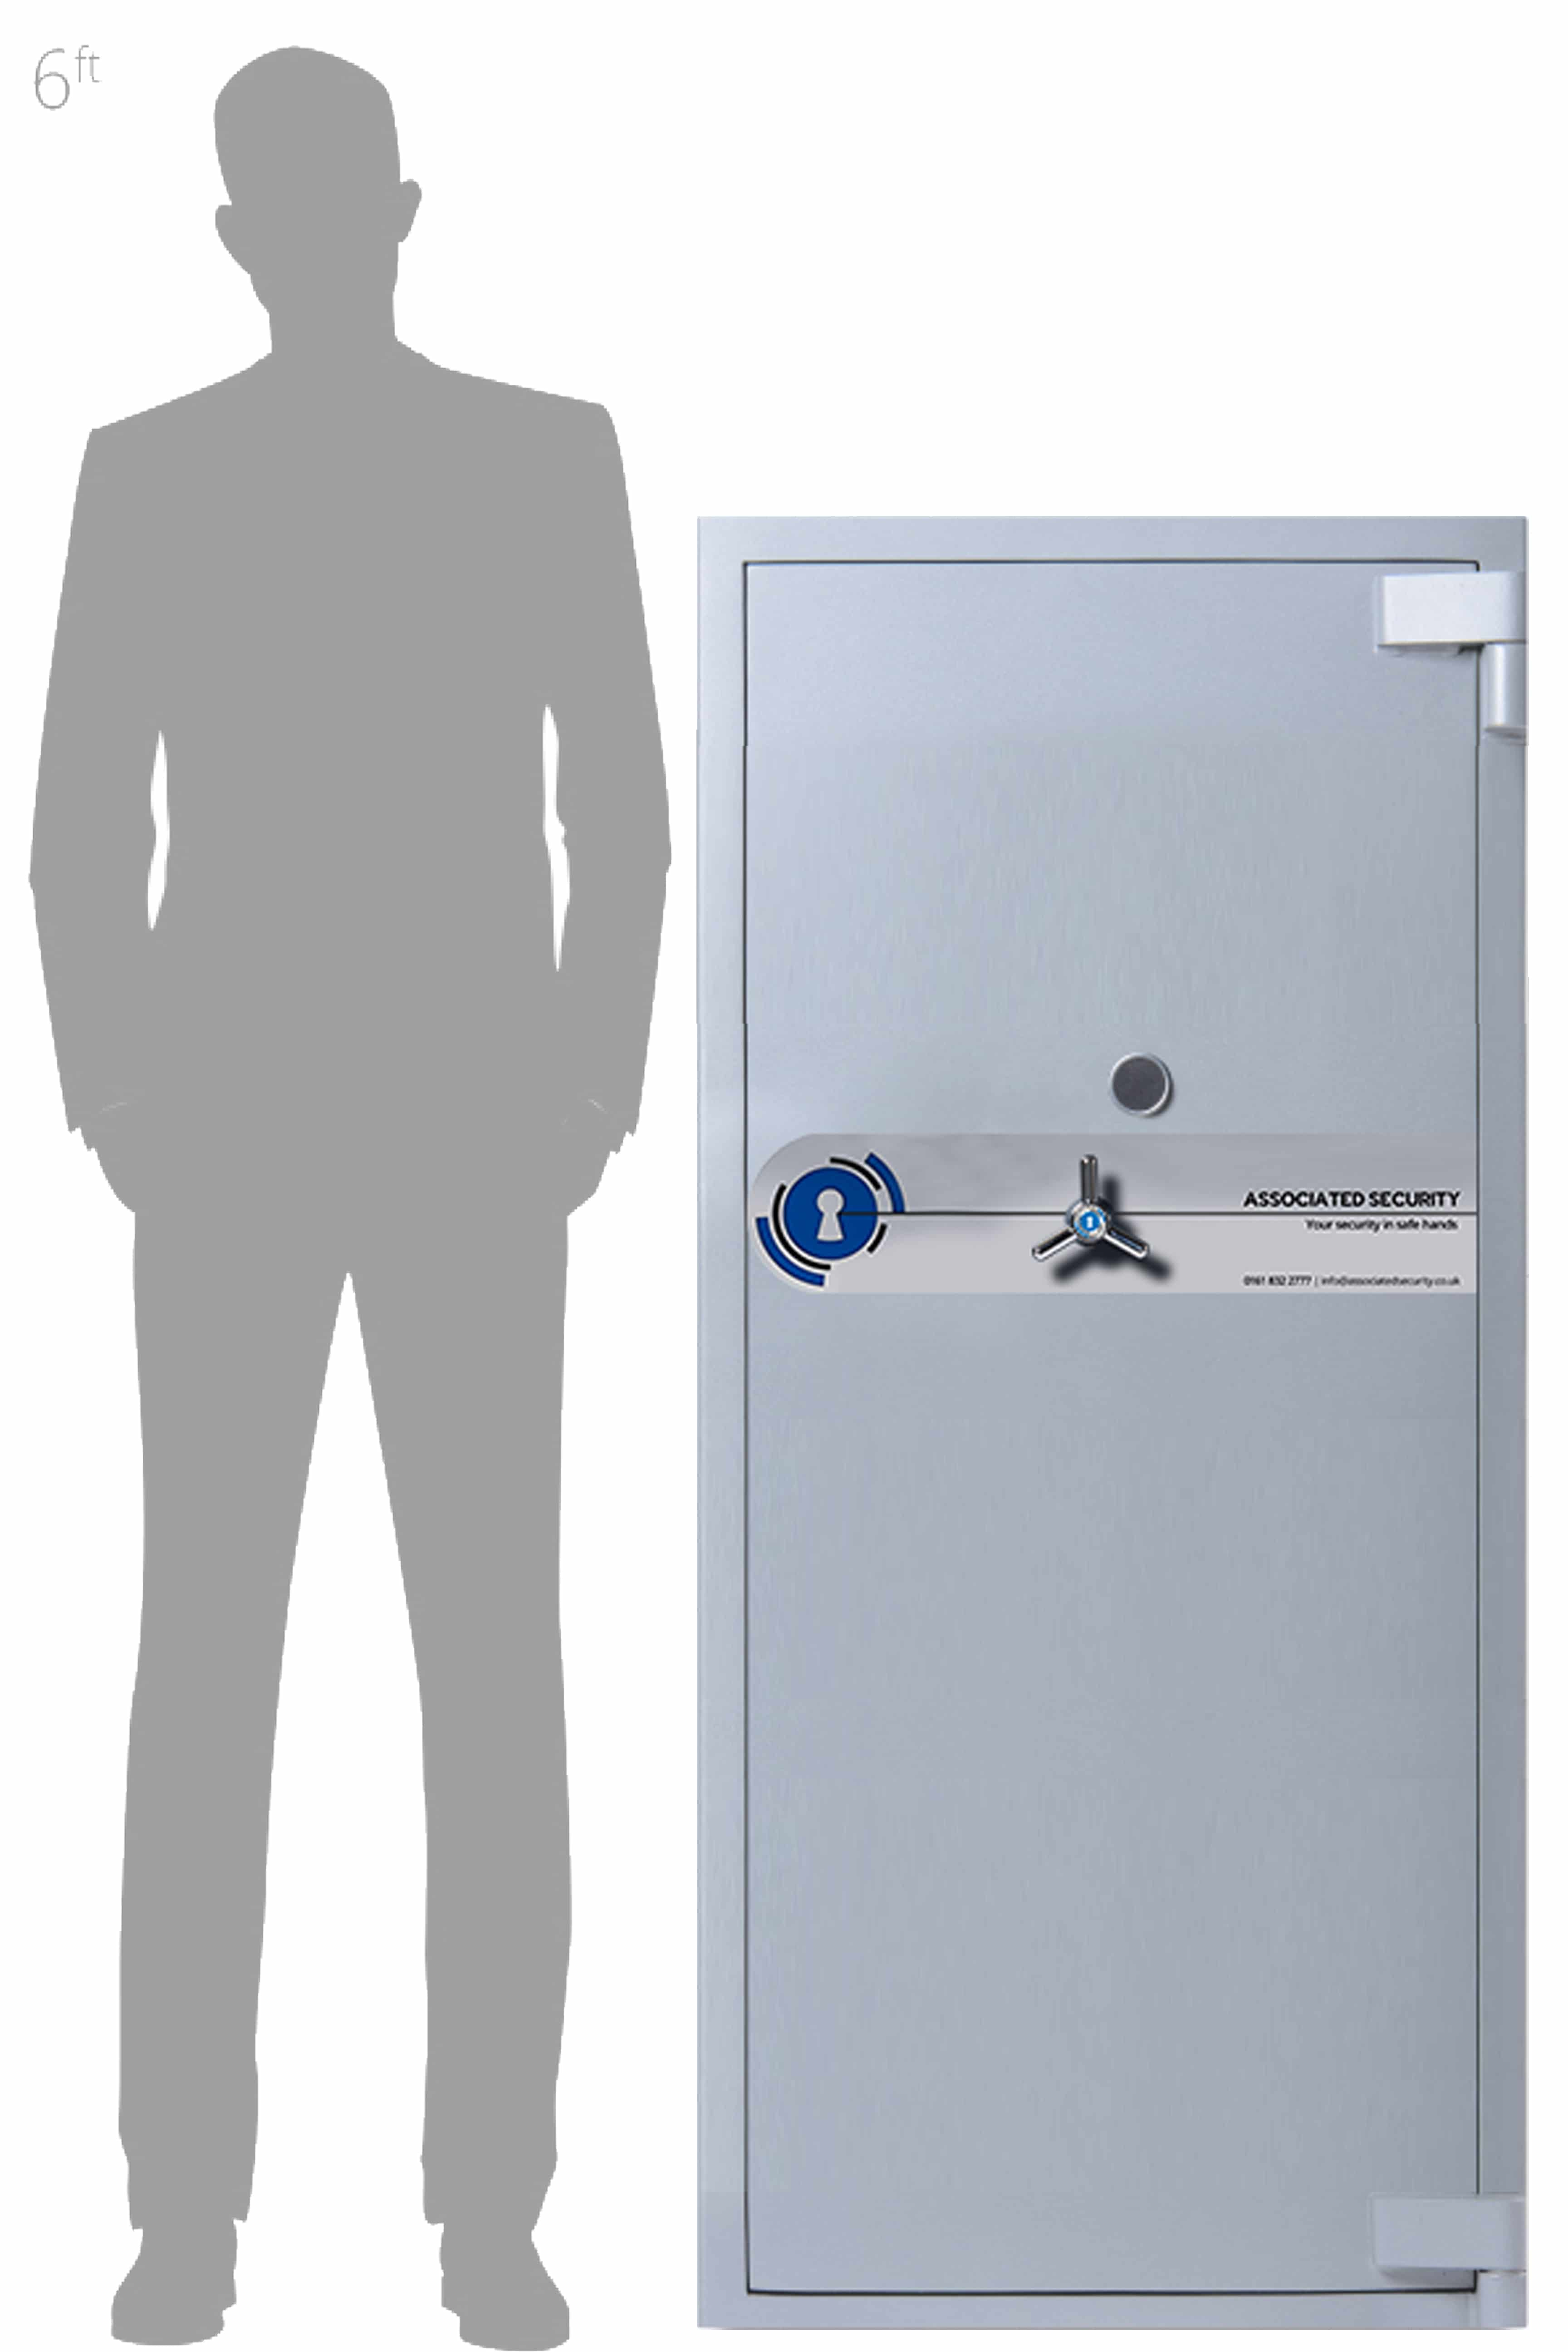 Associated Security- Graded safes